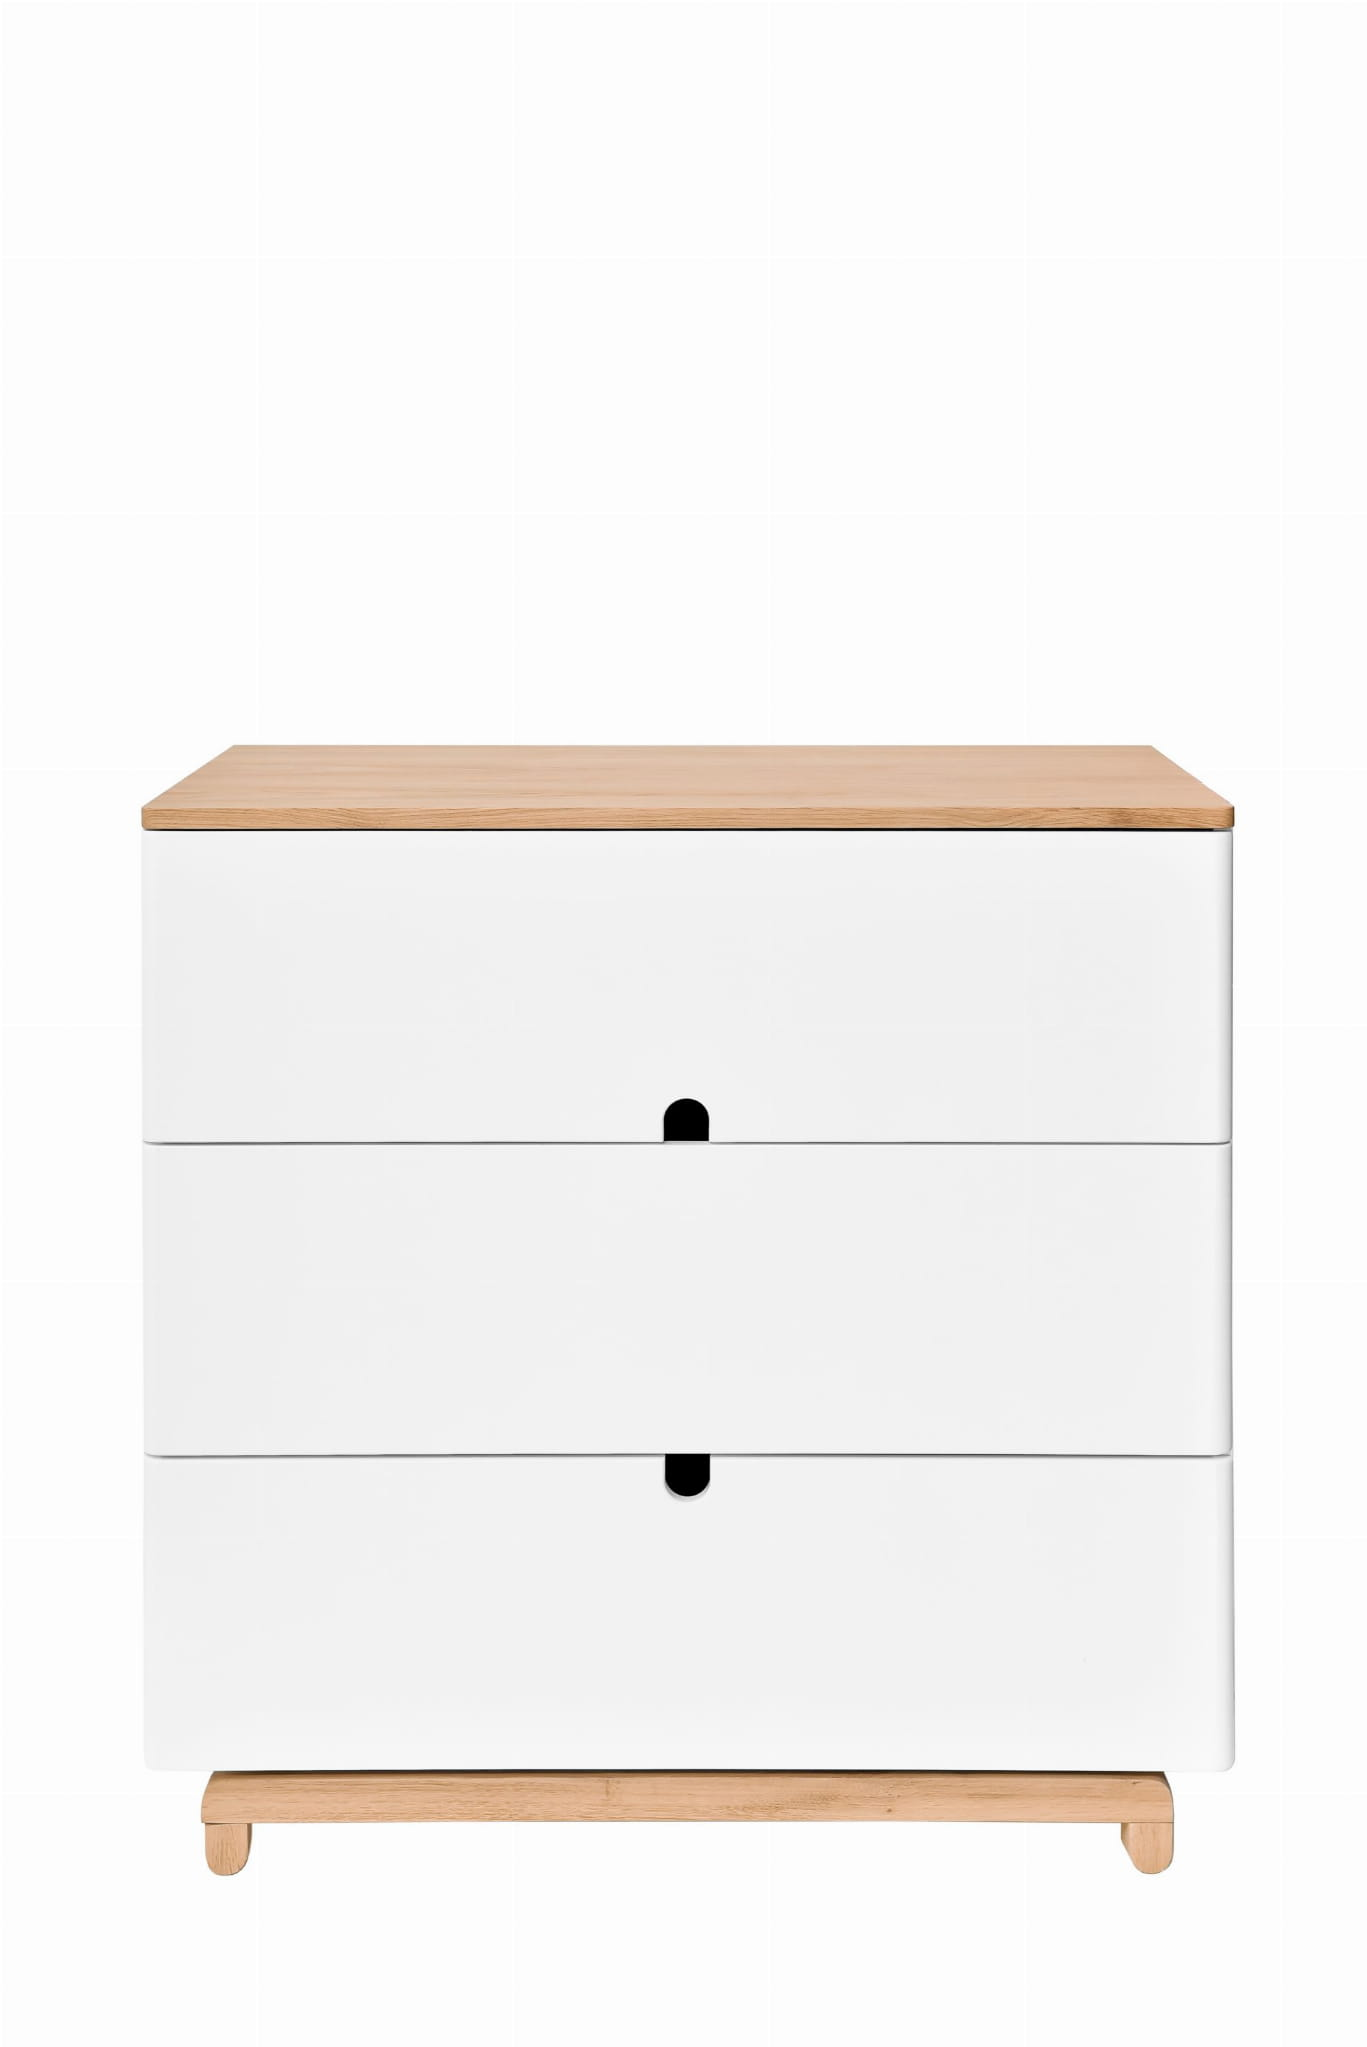 Nomi_chest_of_drawers_01.jpg